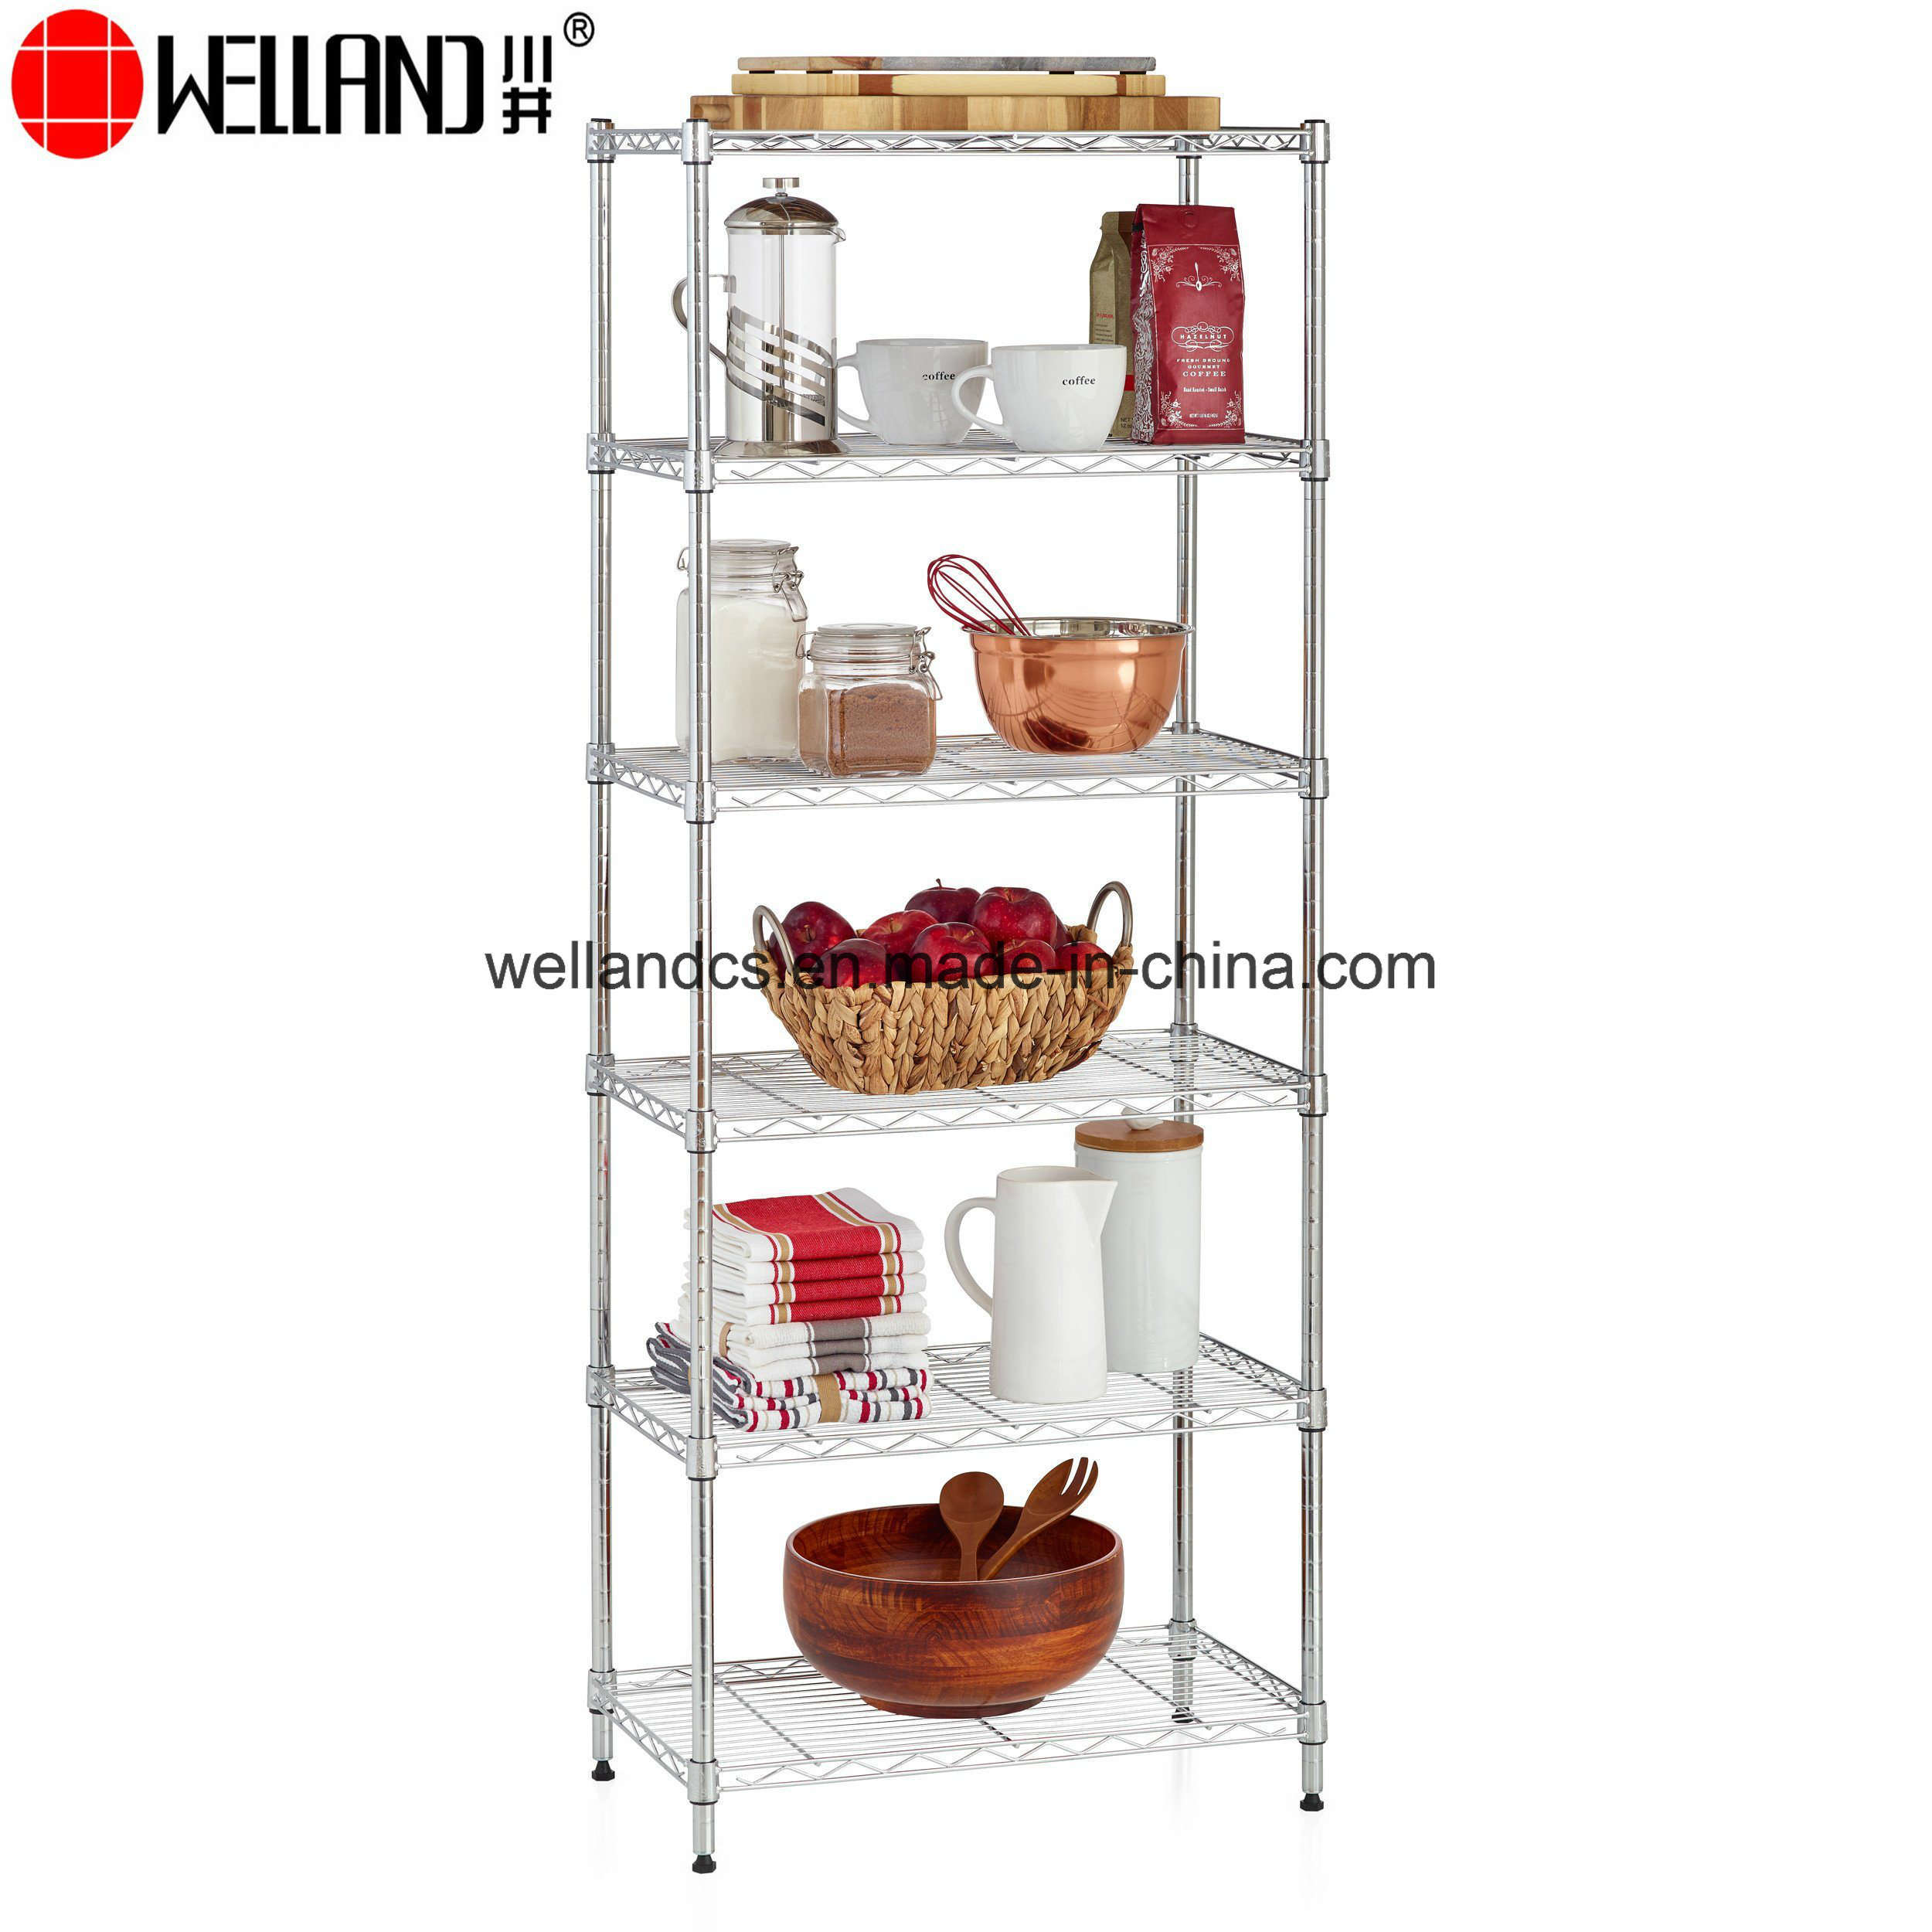 Hot Item Durable Metal Wire Shelf Storage Rack Unit Perfect For Kitchenware Pantry Organization